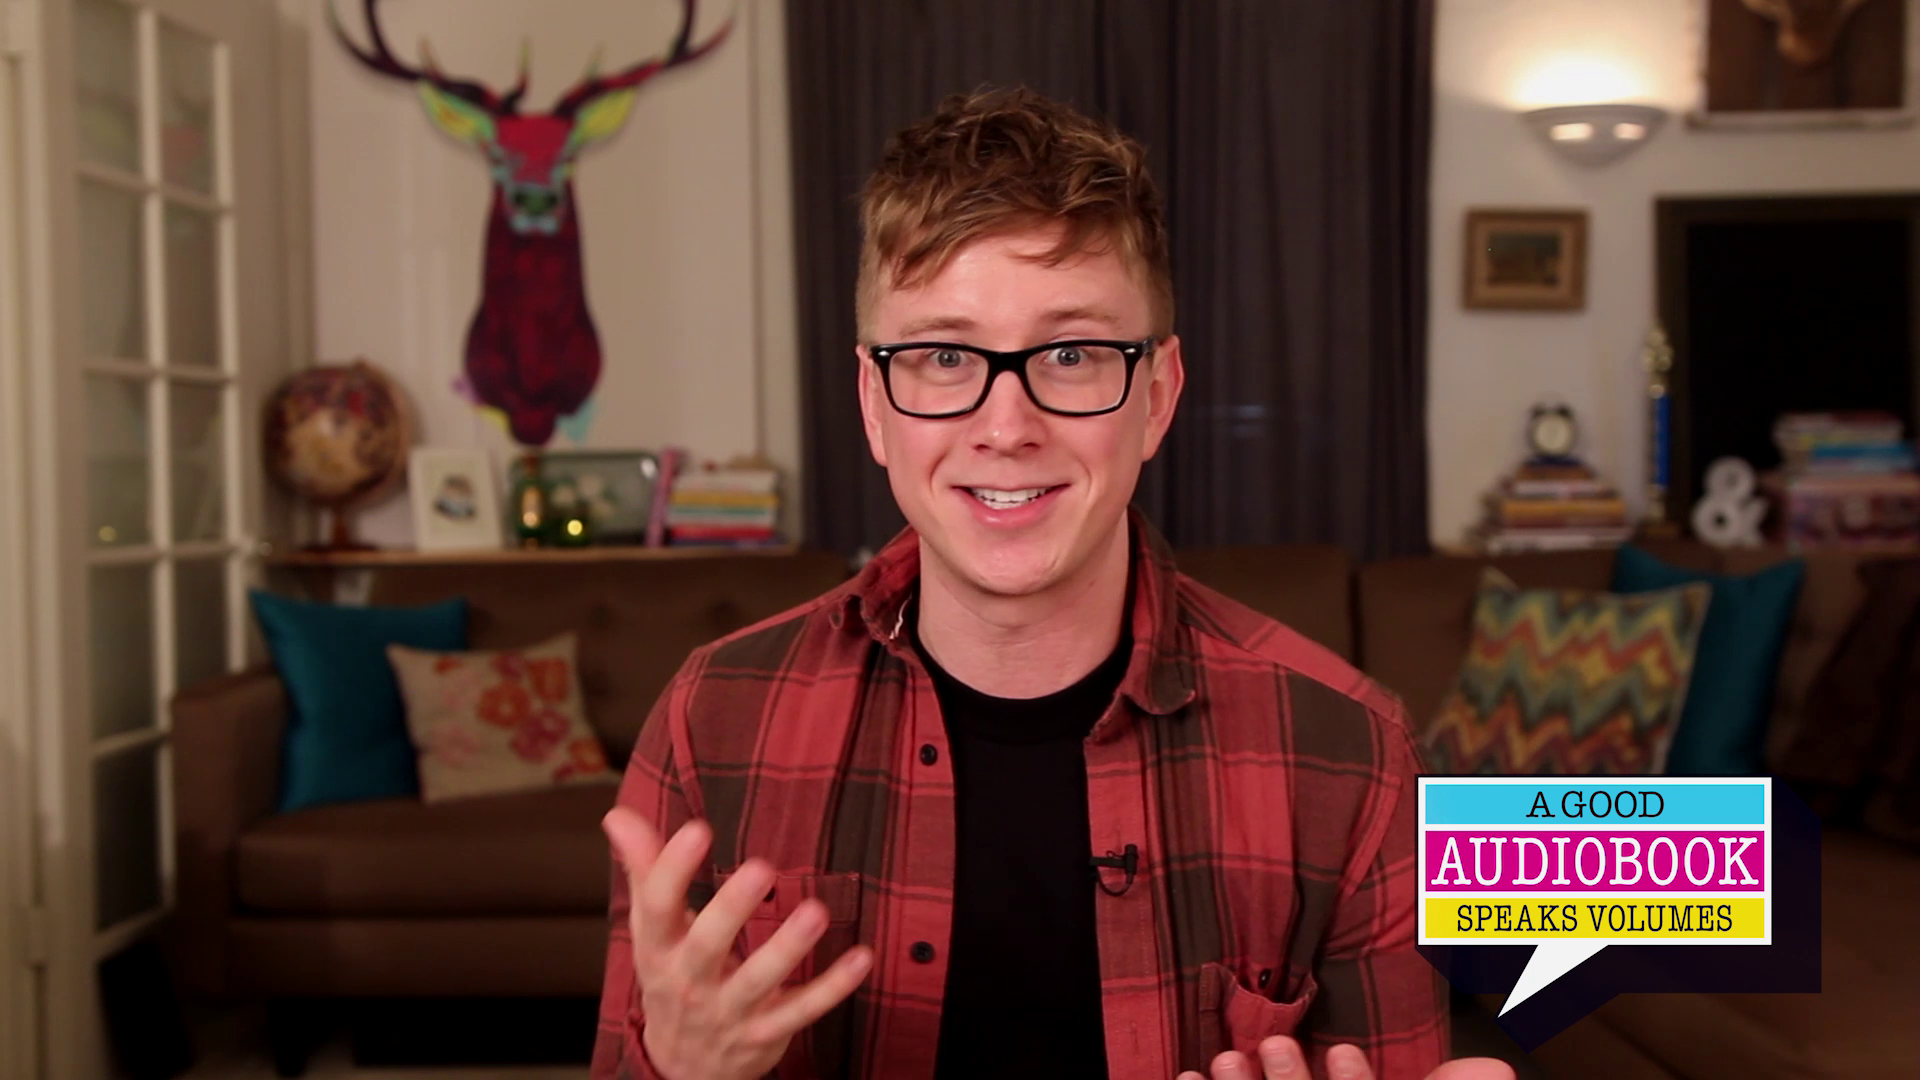 Tyler Oakley tells us why he can't stop listening to audiobooks